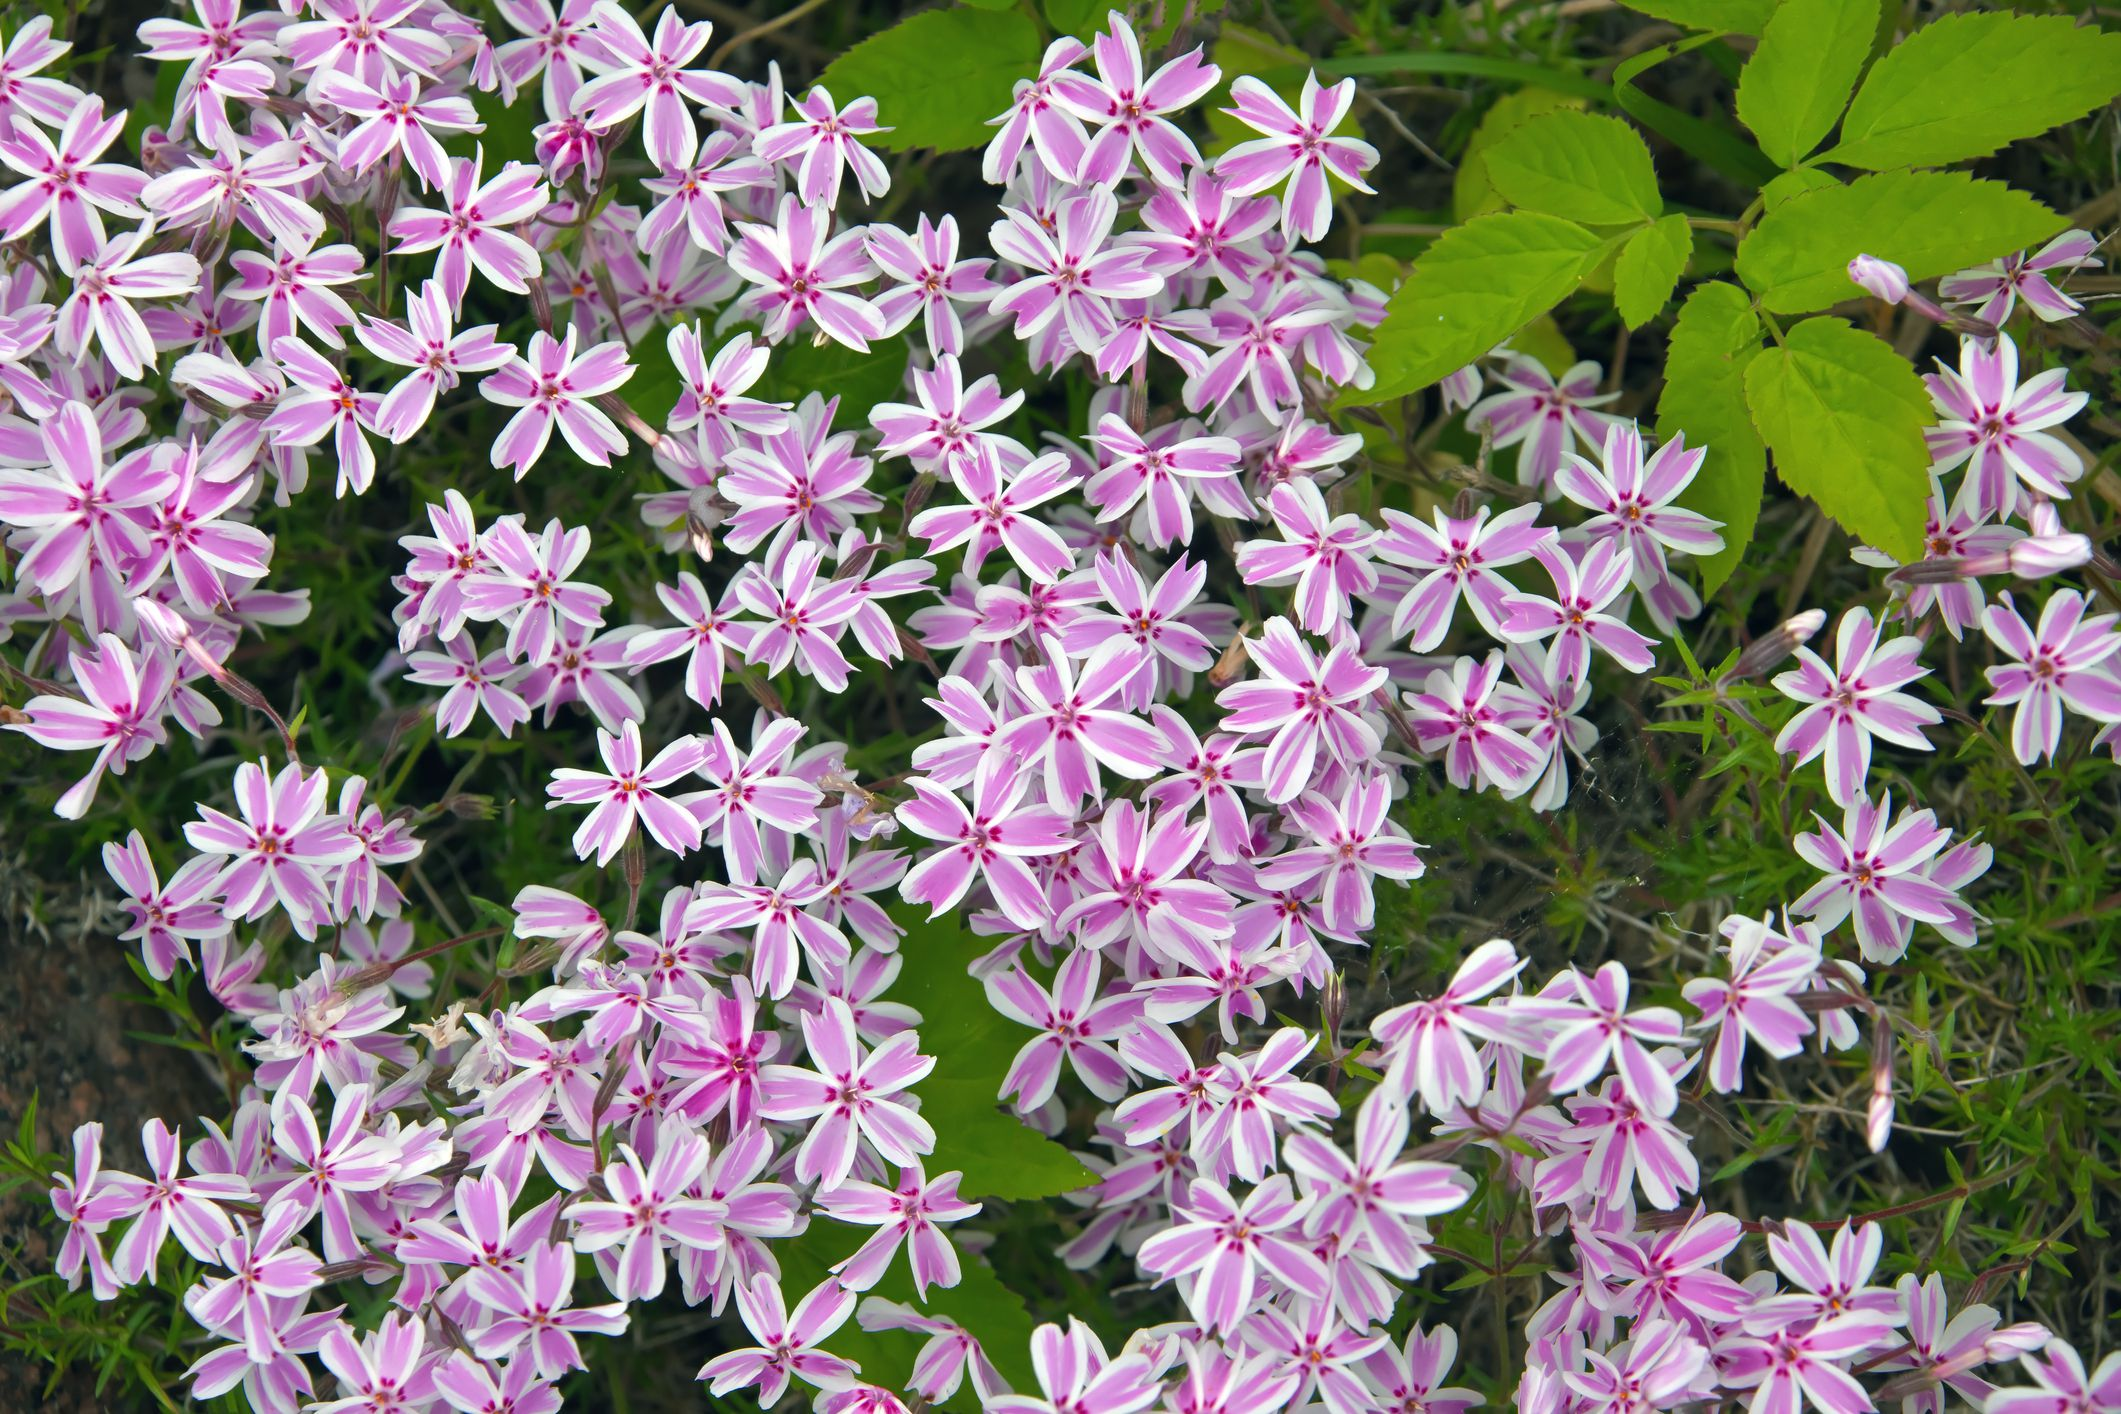 Creeping phlox flowers with pink in middle and white at edges.